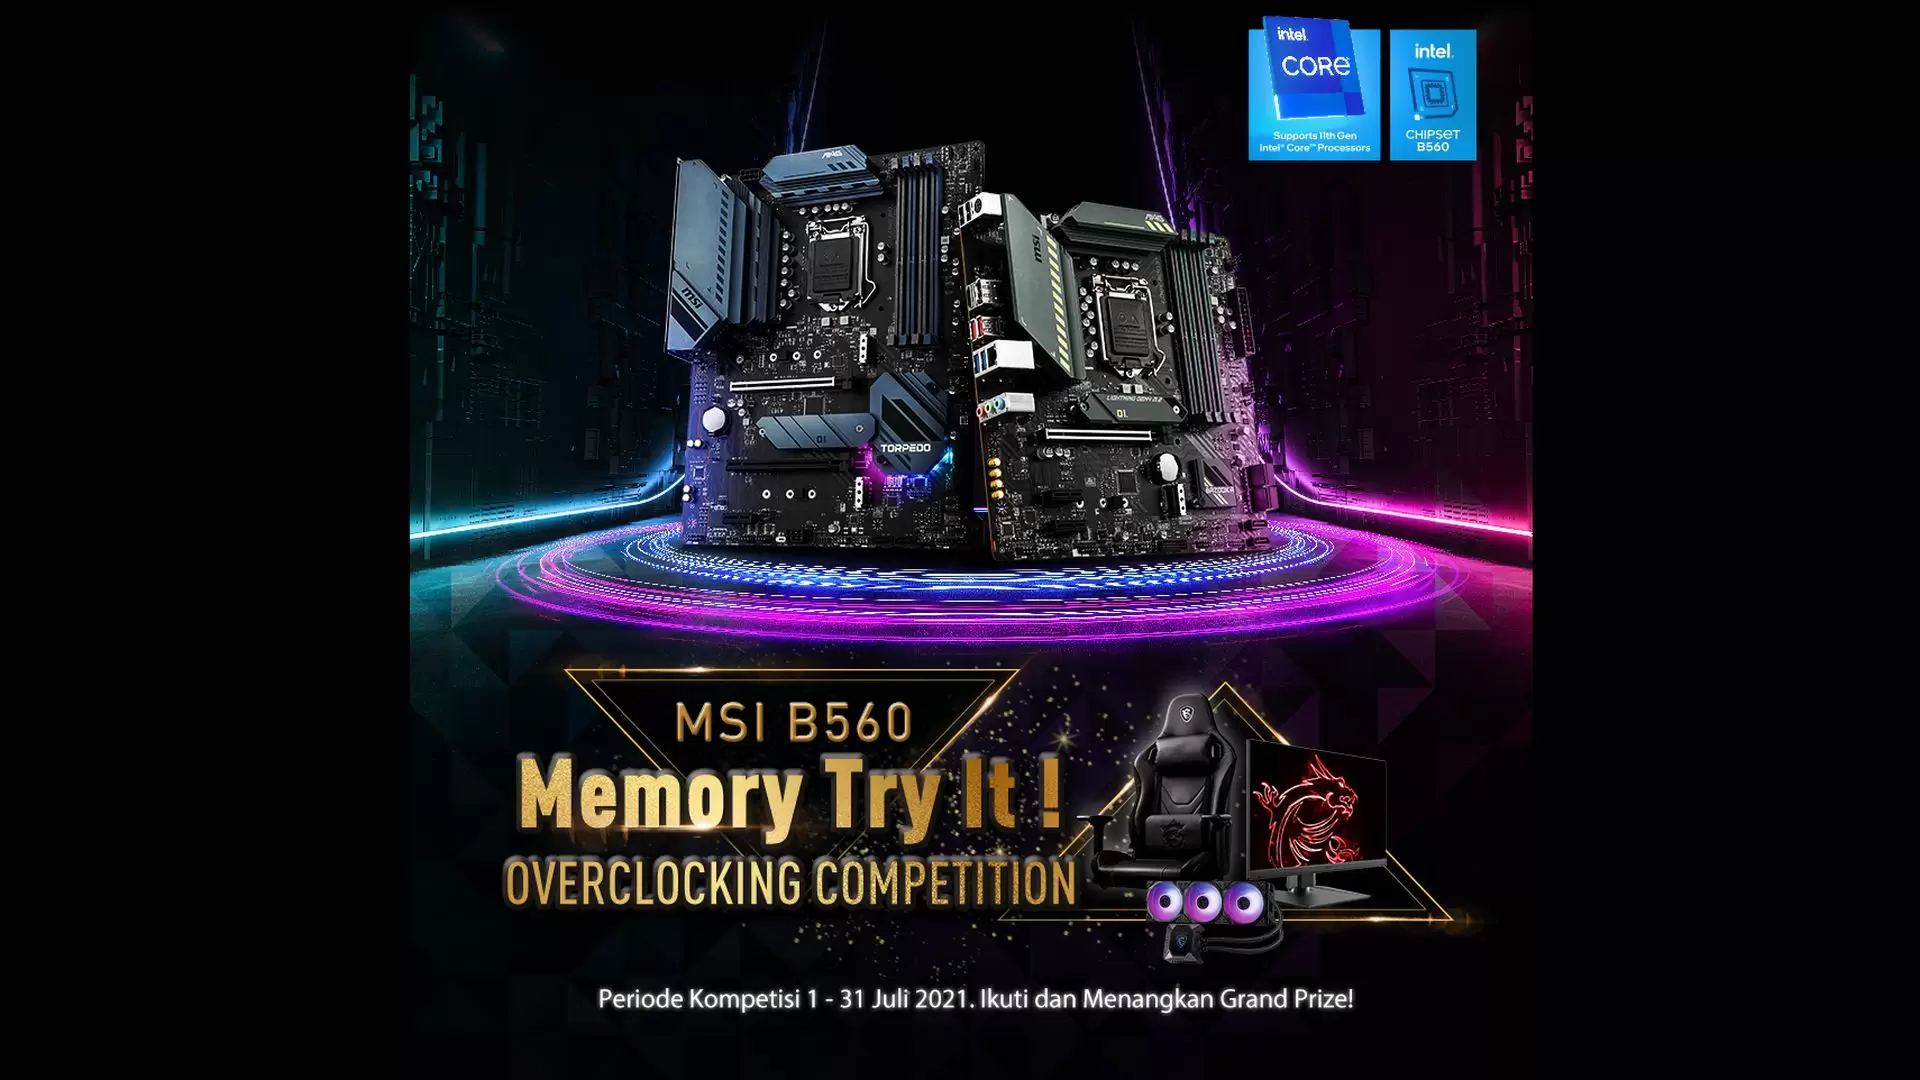 MSI B560 Competition